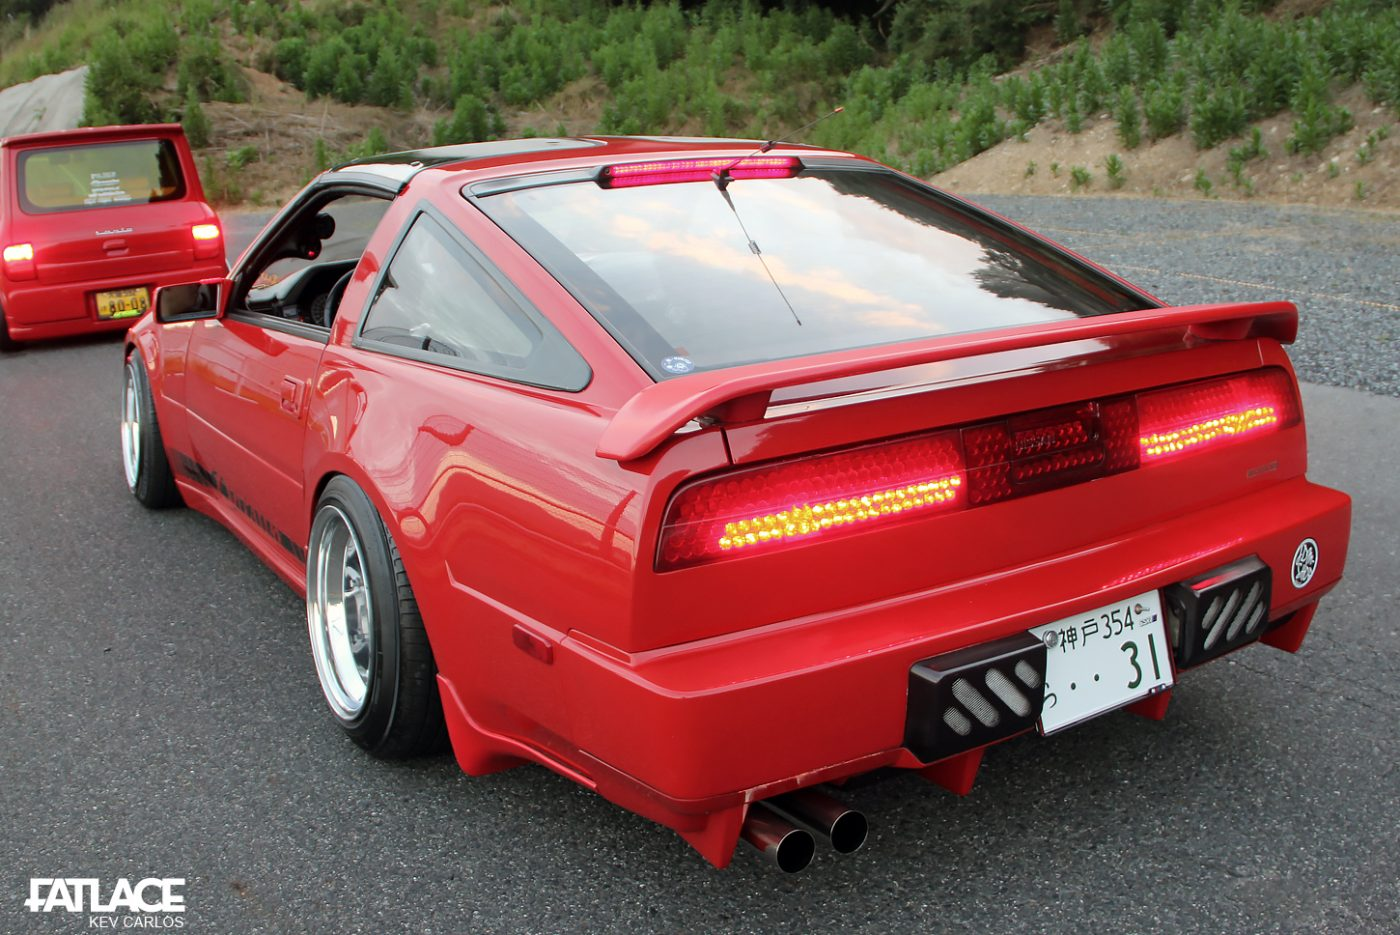 Additional Modifications For The Z31 Includes Led Taillights And A Modified Mk Iii Supra Rear Wing